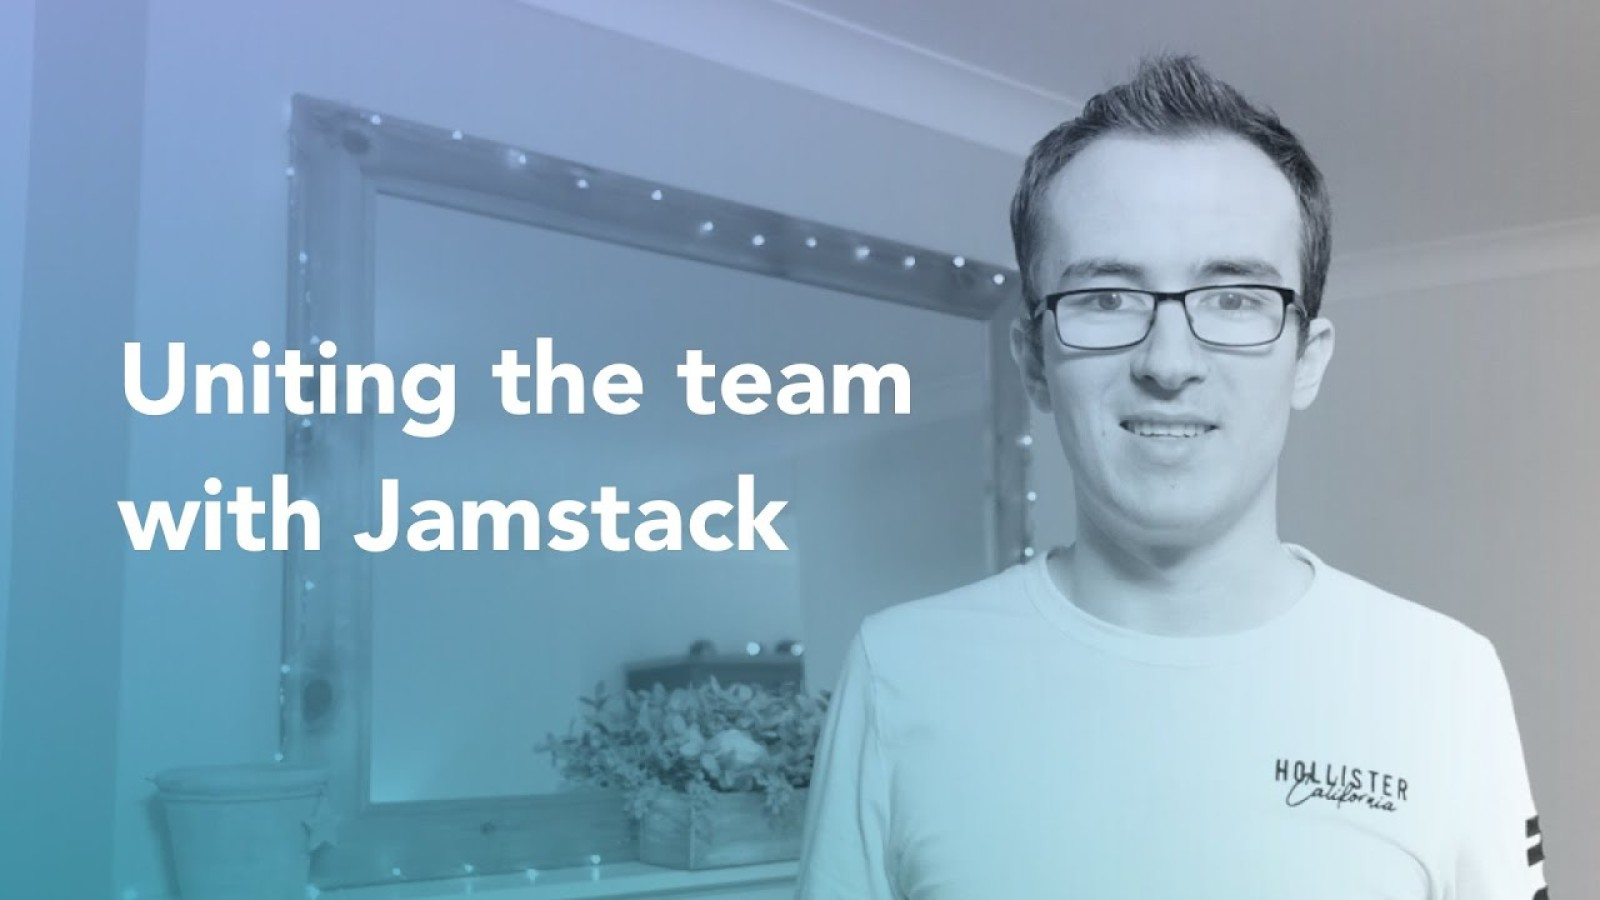 Uniting the team with Jamstack